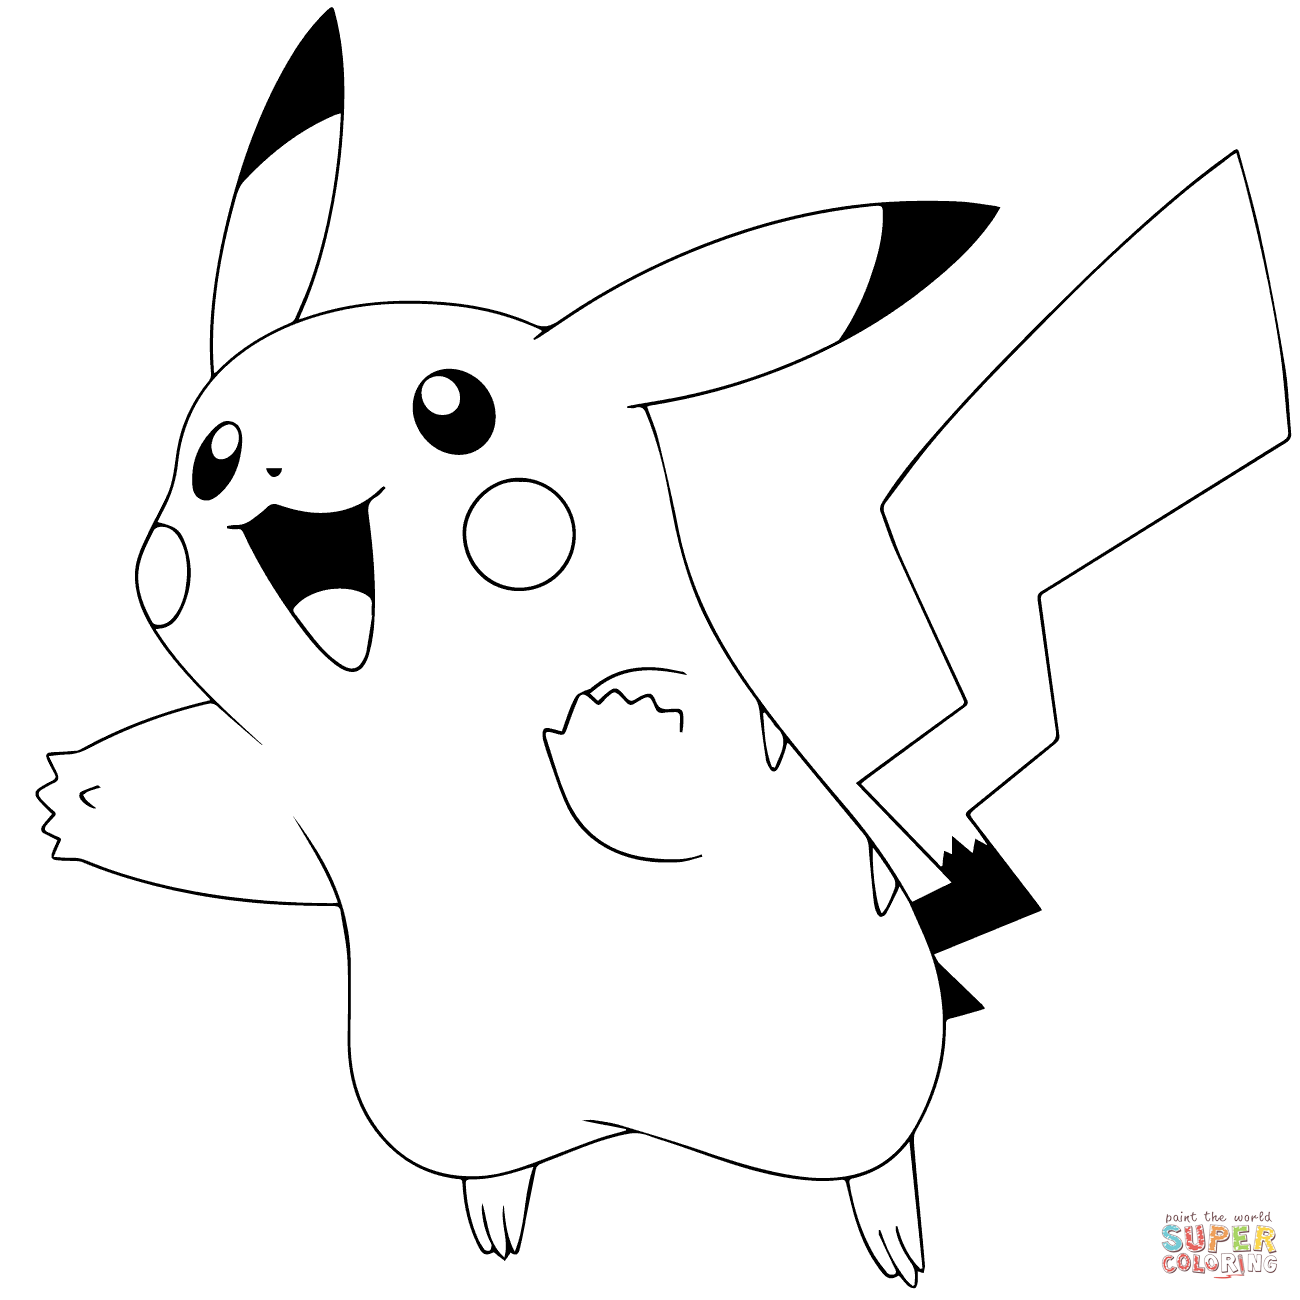 Pokémon Go Pikachu 025 Coloring Page Free Printable Coloring Pages